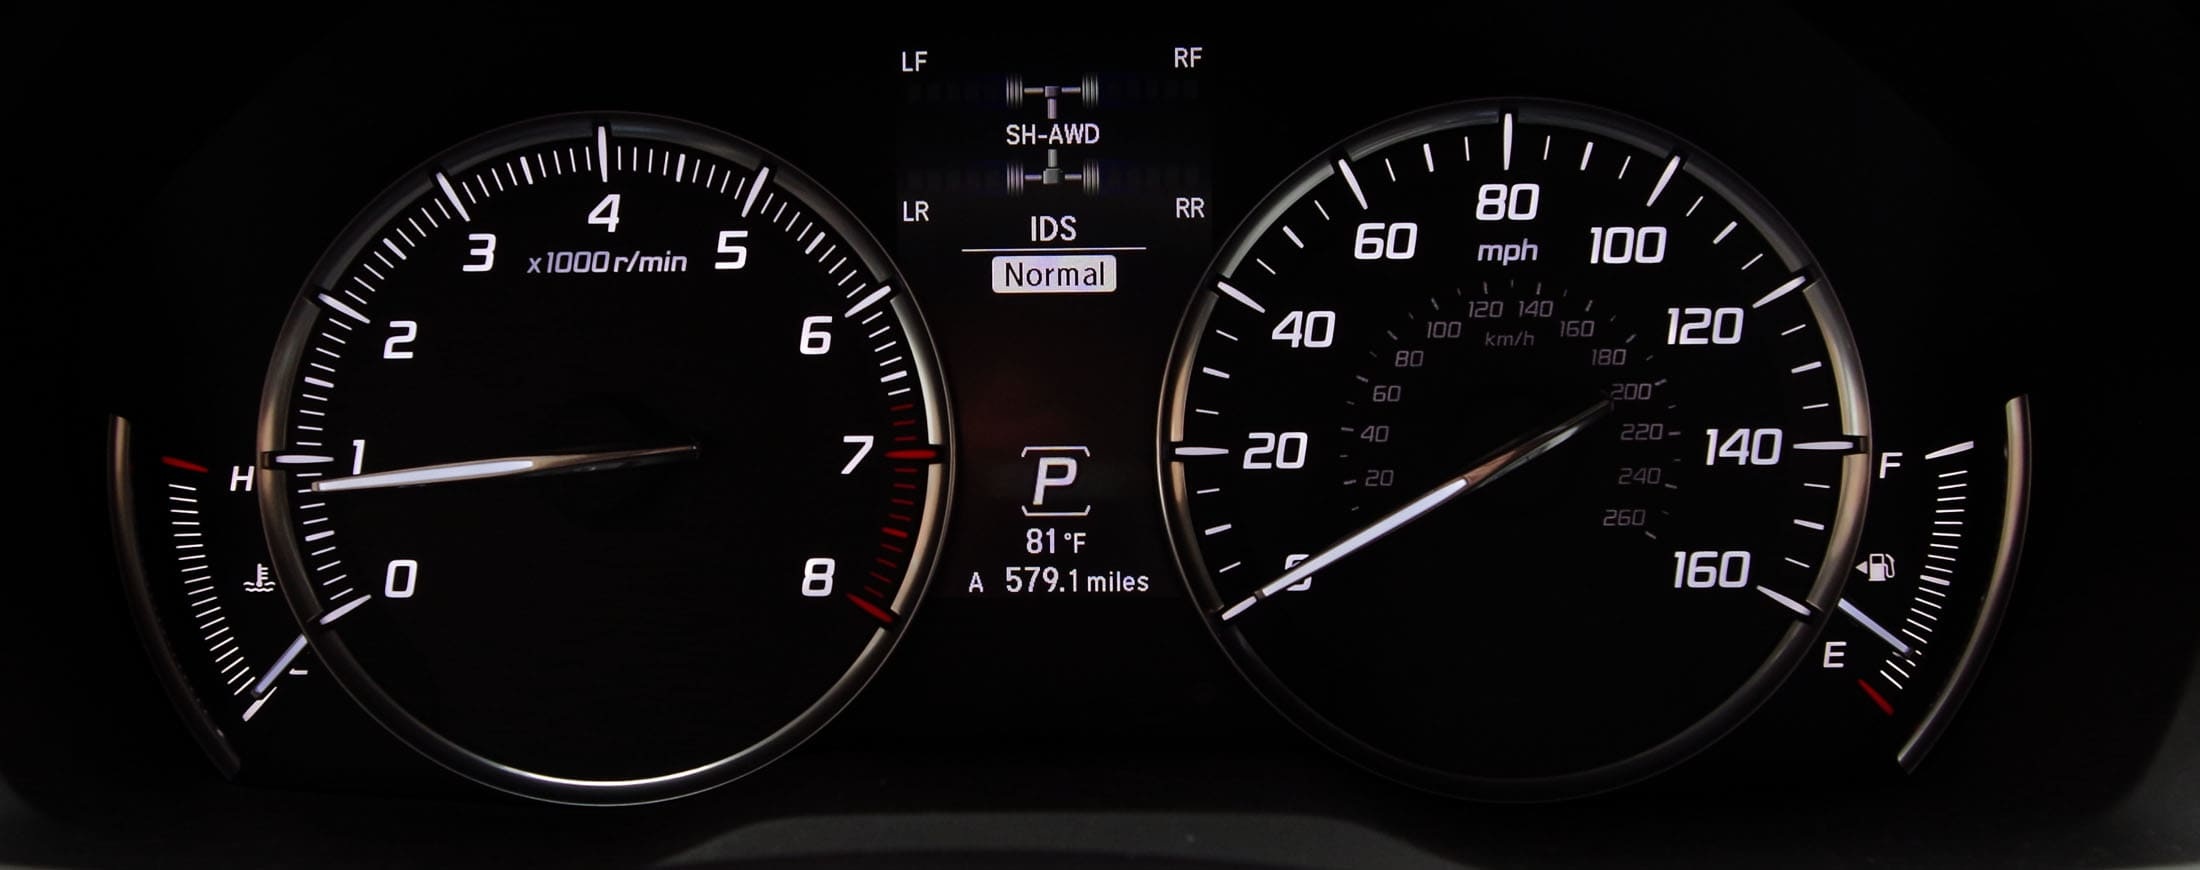 The gauge cluster on the 2014 Acura MDX.